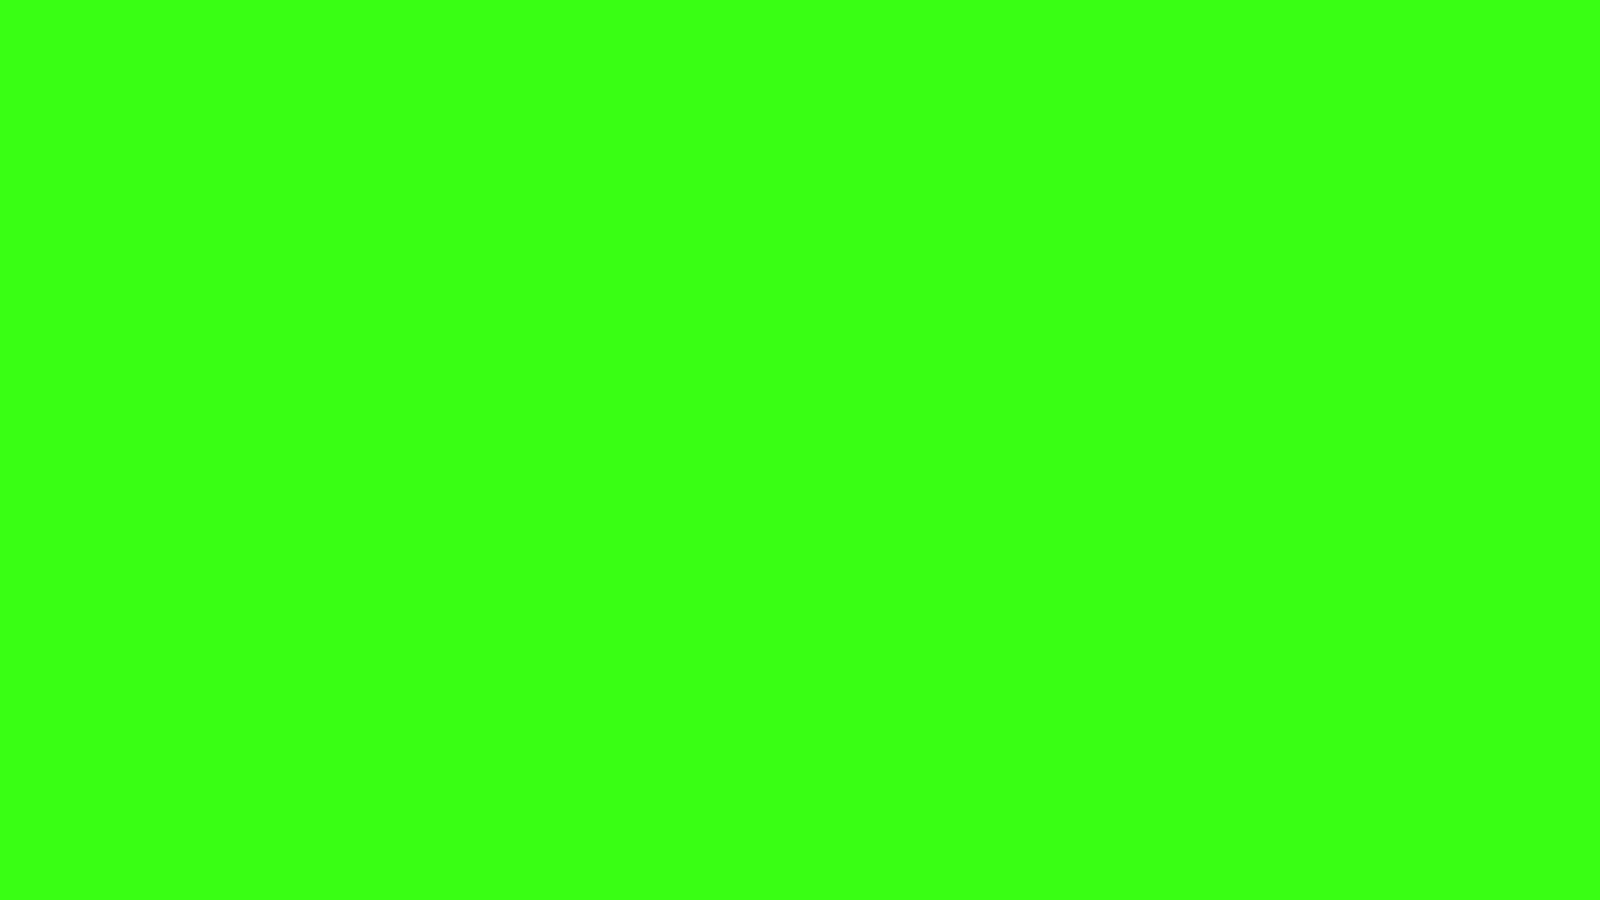 Privacy Policy >> 1600x900 Neon Green Solid Color Background